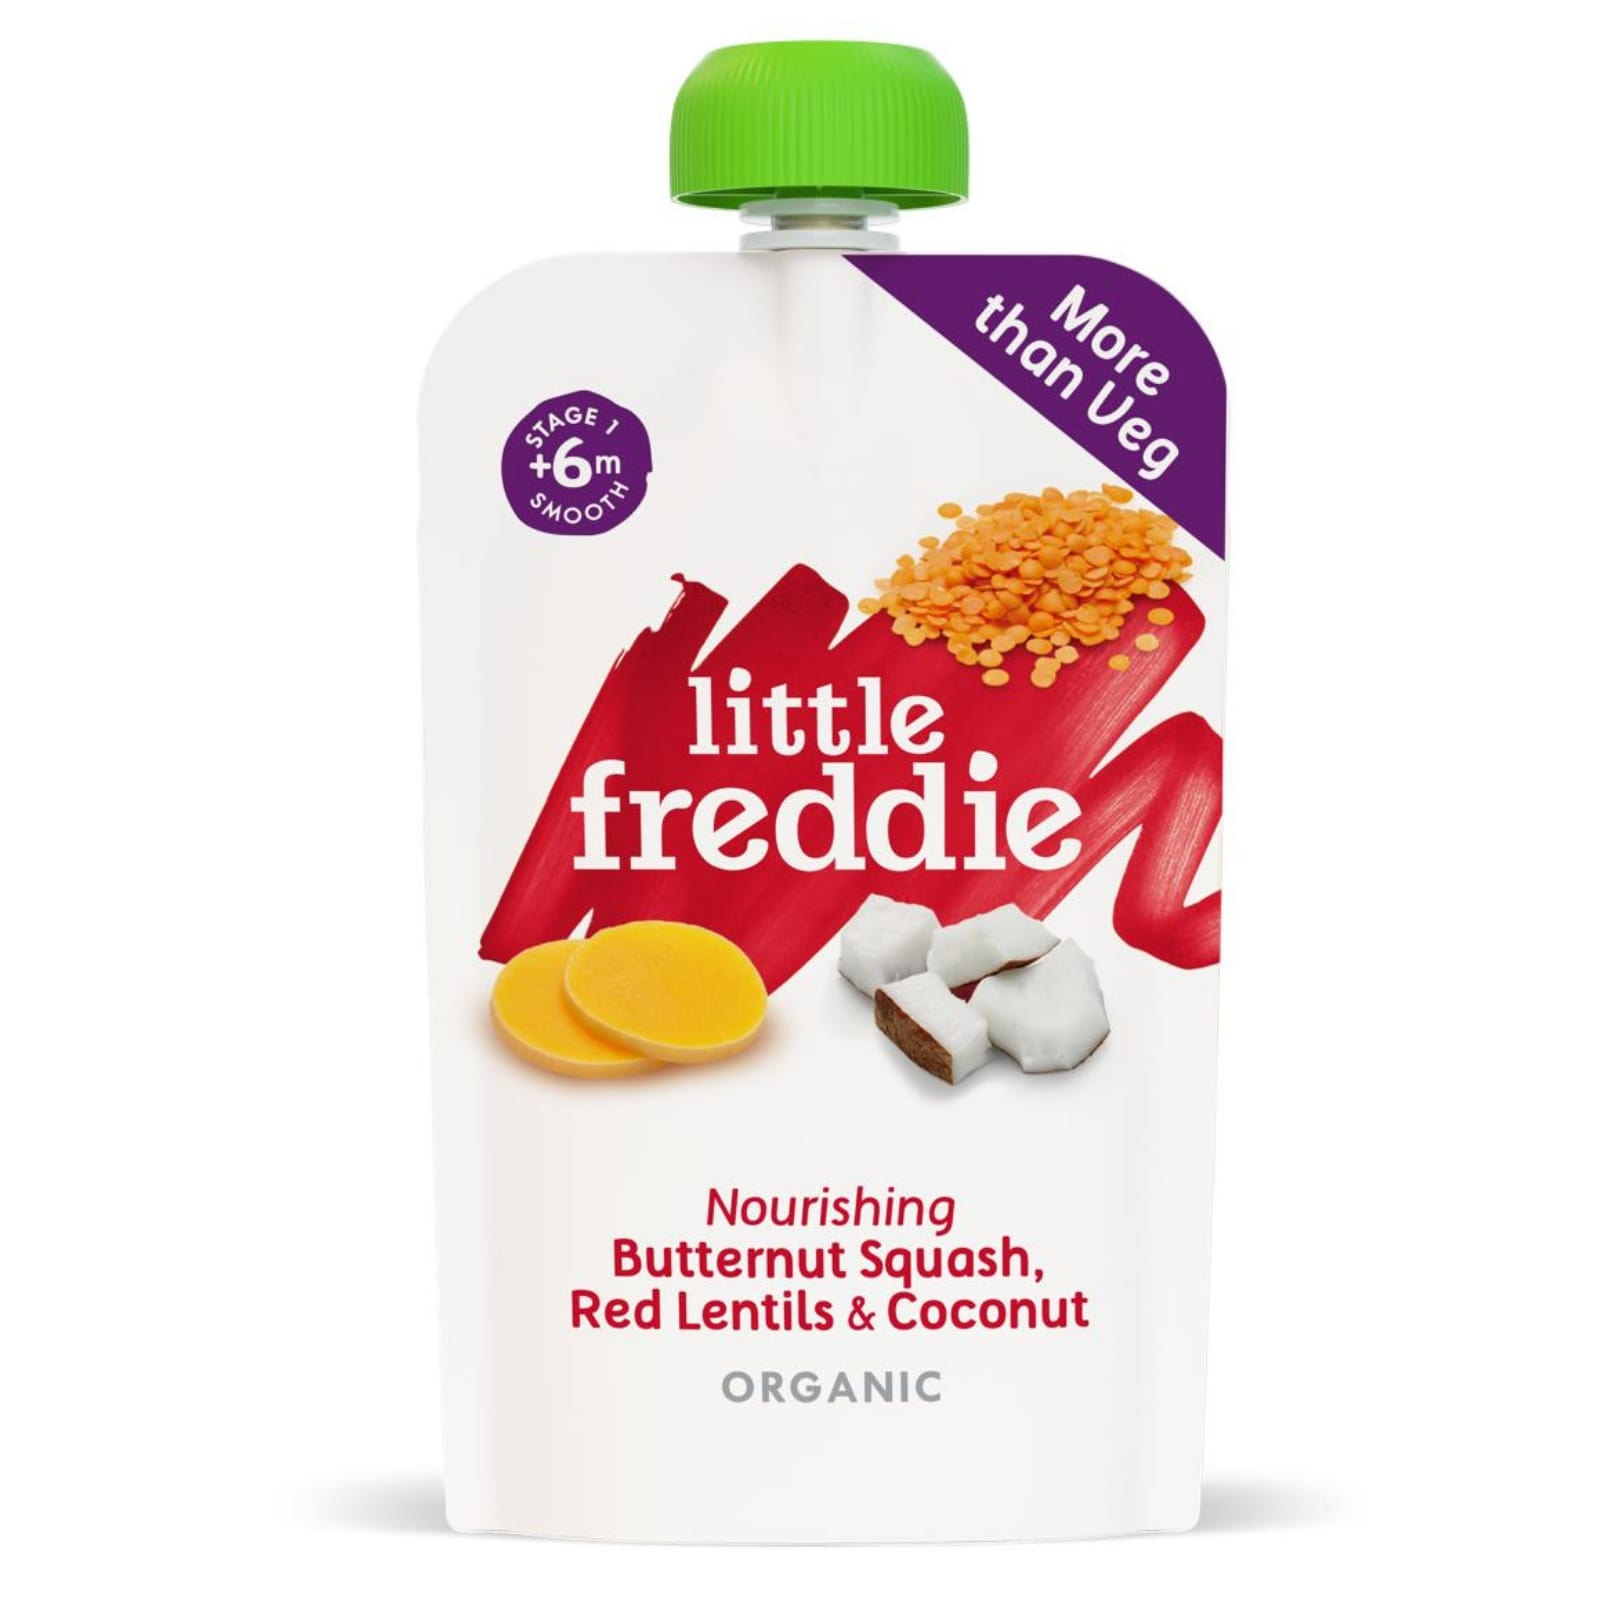 Little Freddie Nourishing Butternut Squash, Red Lentils & Coconut 120g